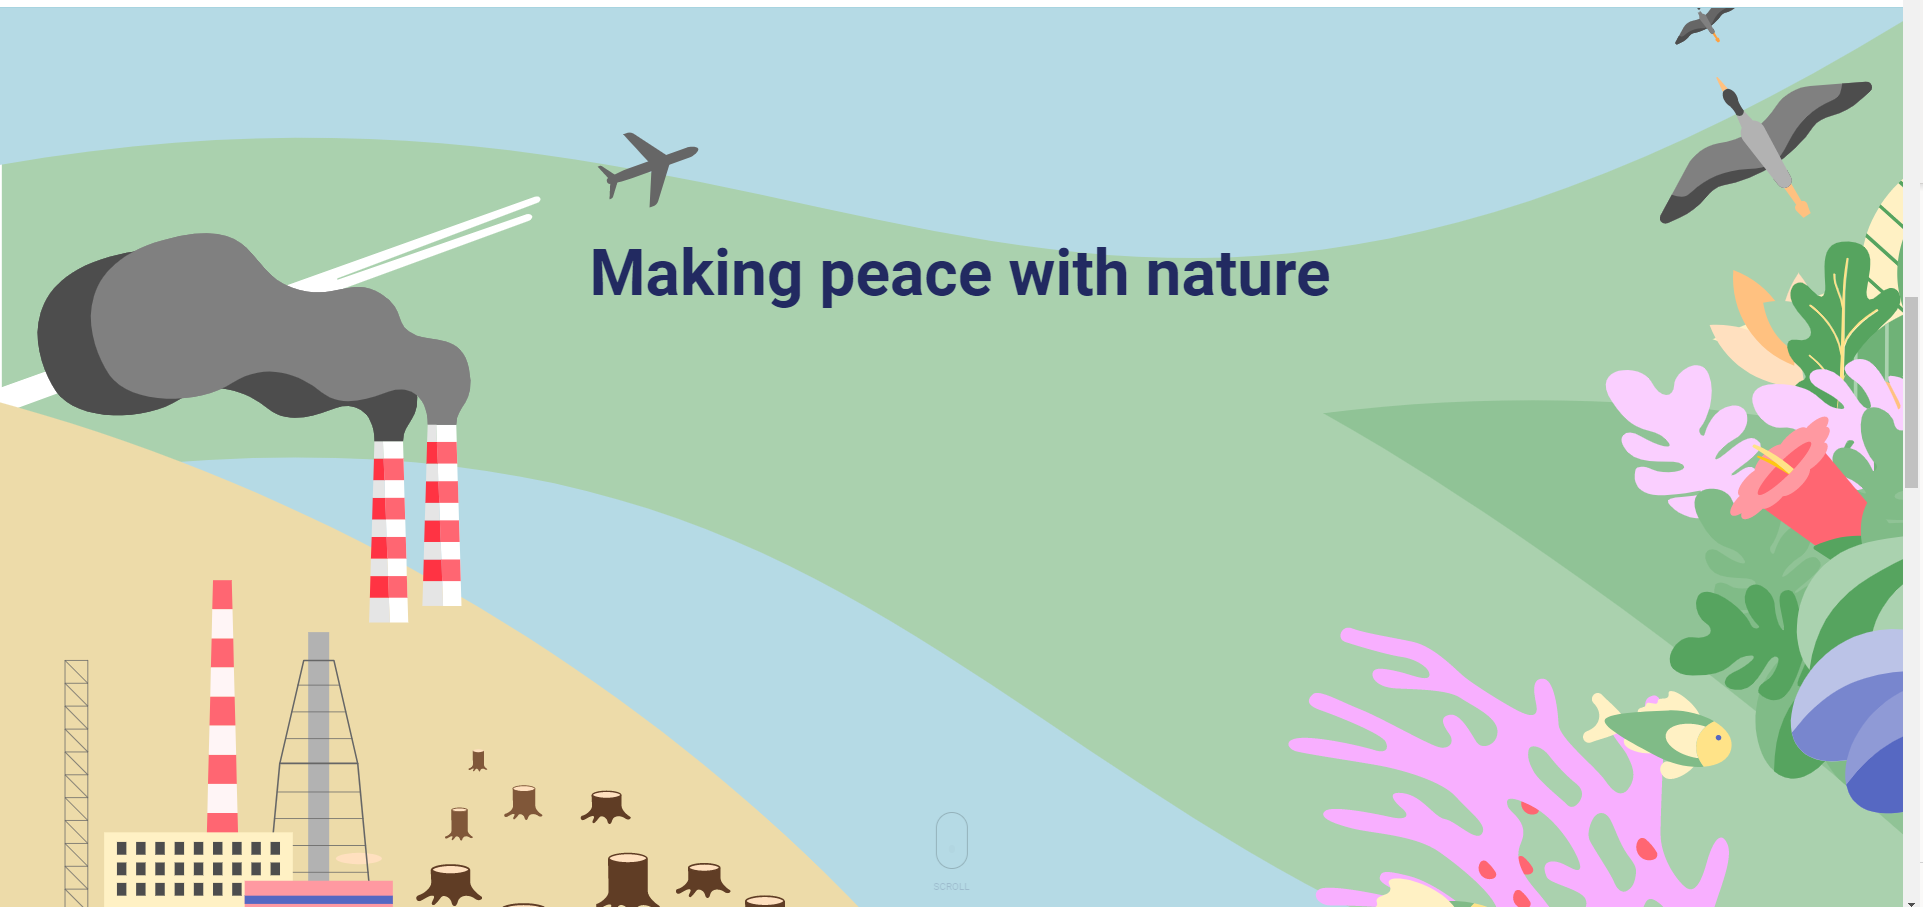 Making peace with nature is possible if we start now